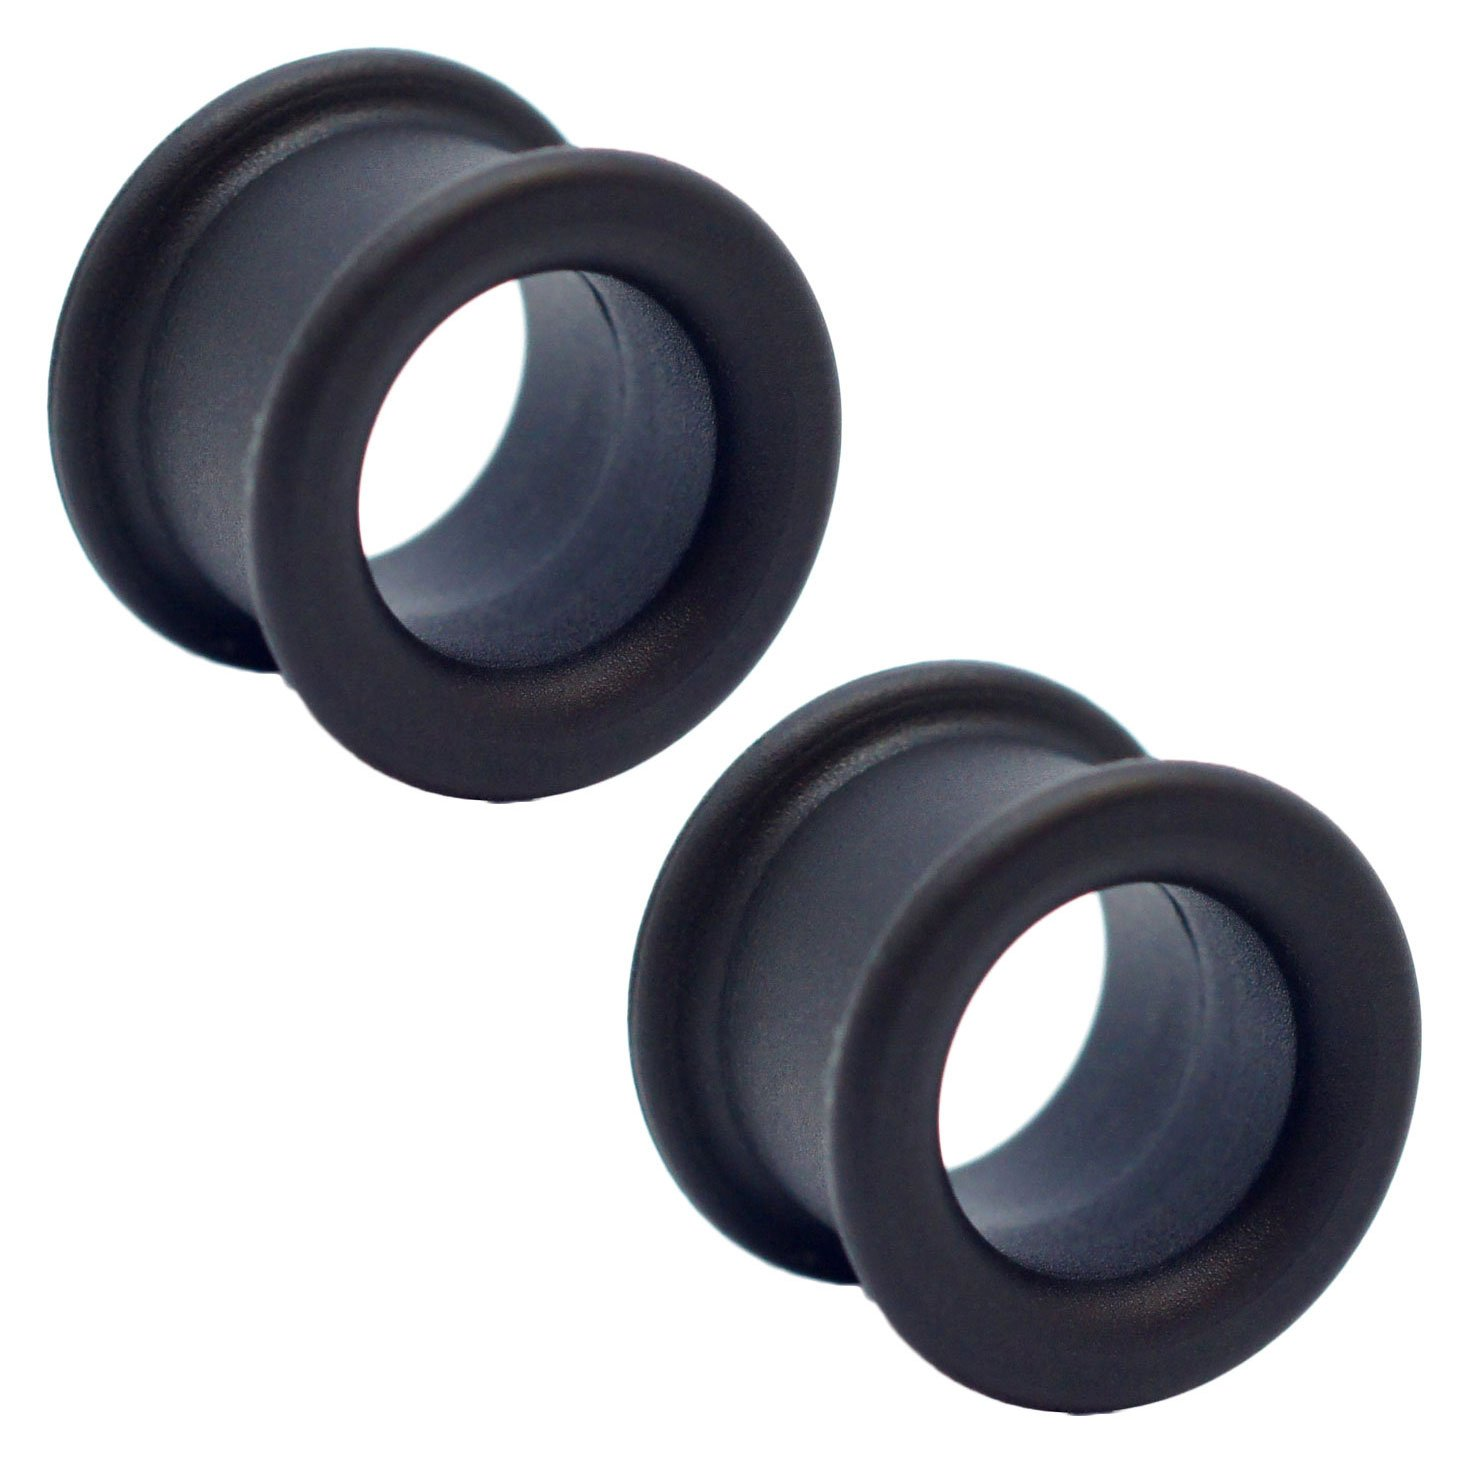 Pair of Silicone Double Flared Eyelets: 3/4